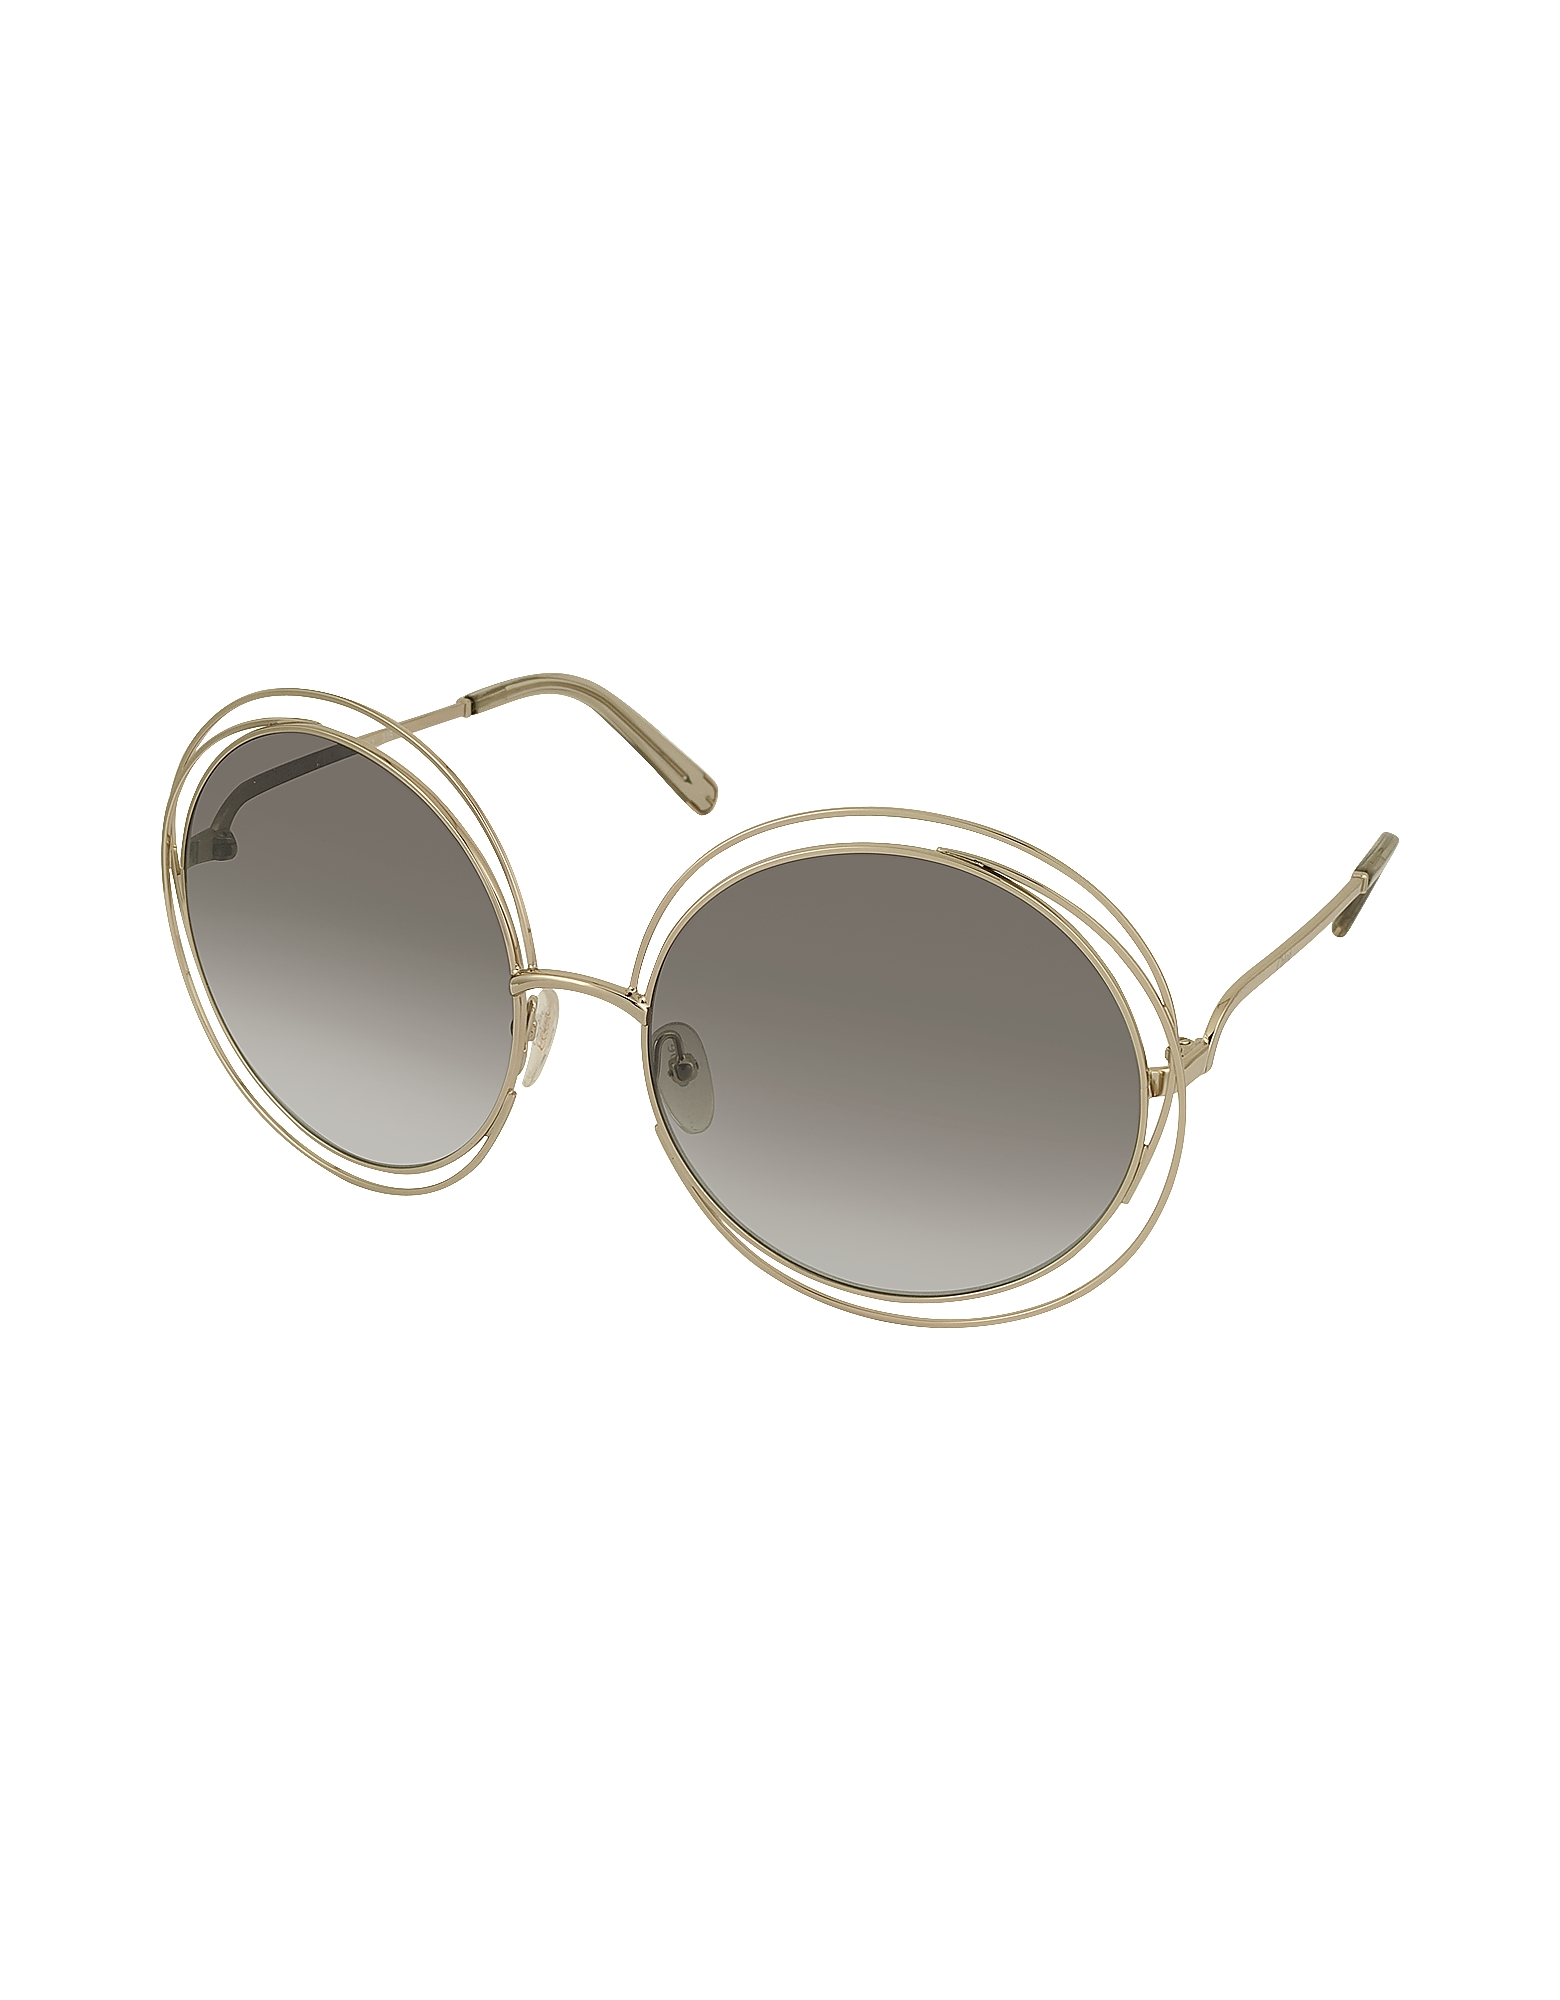 CARLINA CE 114S Metal Oval Women's Sunglasses от Forzieri.com INT